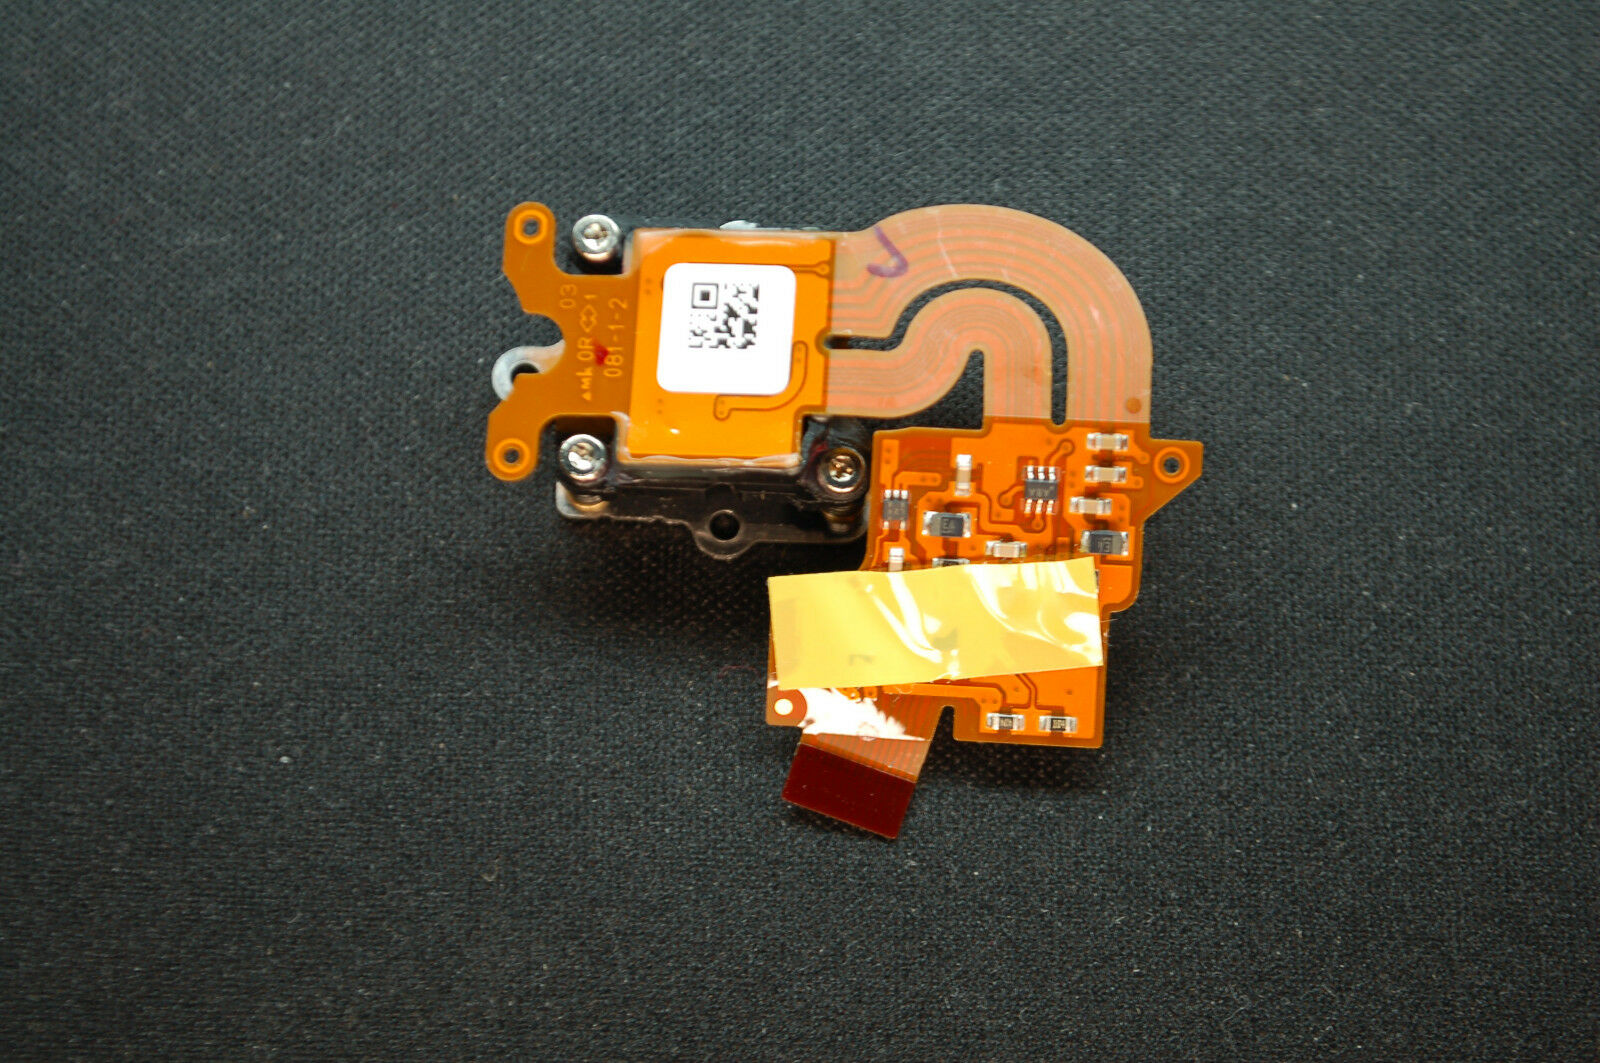 NIKON D700 MAINBOARD CONNECTION FLEX CABLE FPC REPLACEMENT REPAIR PART